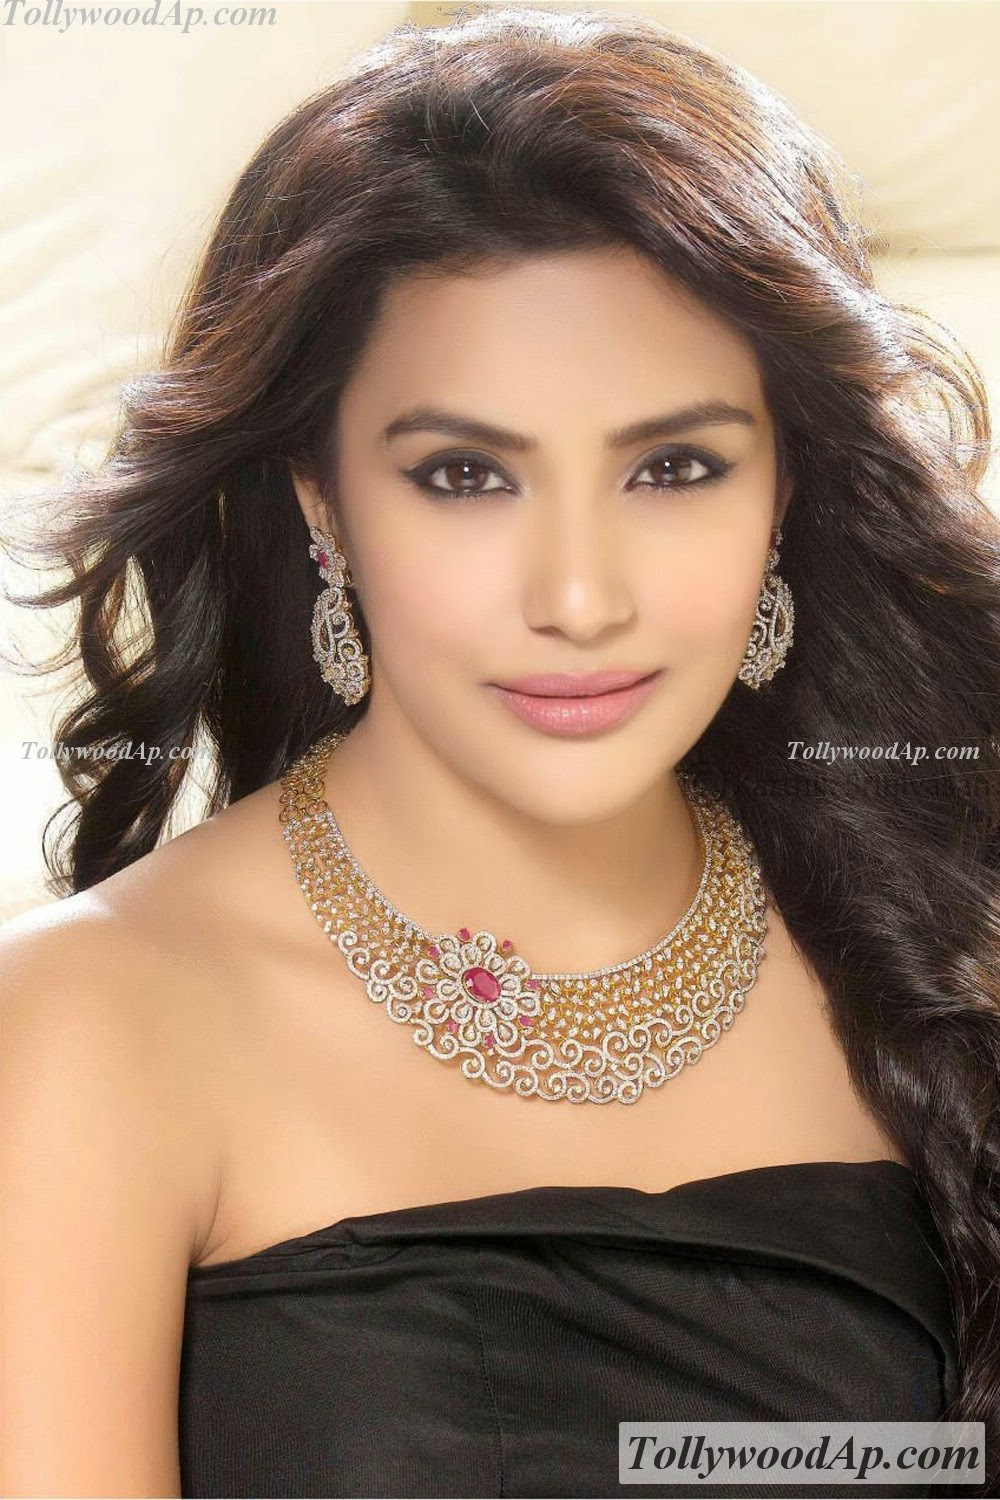 Latest Cute Wallpapers For Mobile Priya Anand High Resolution Wallpapers